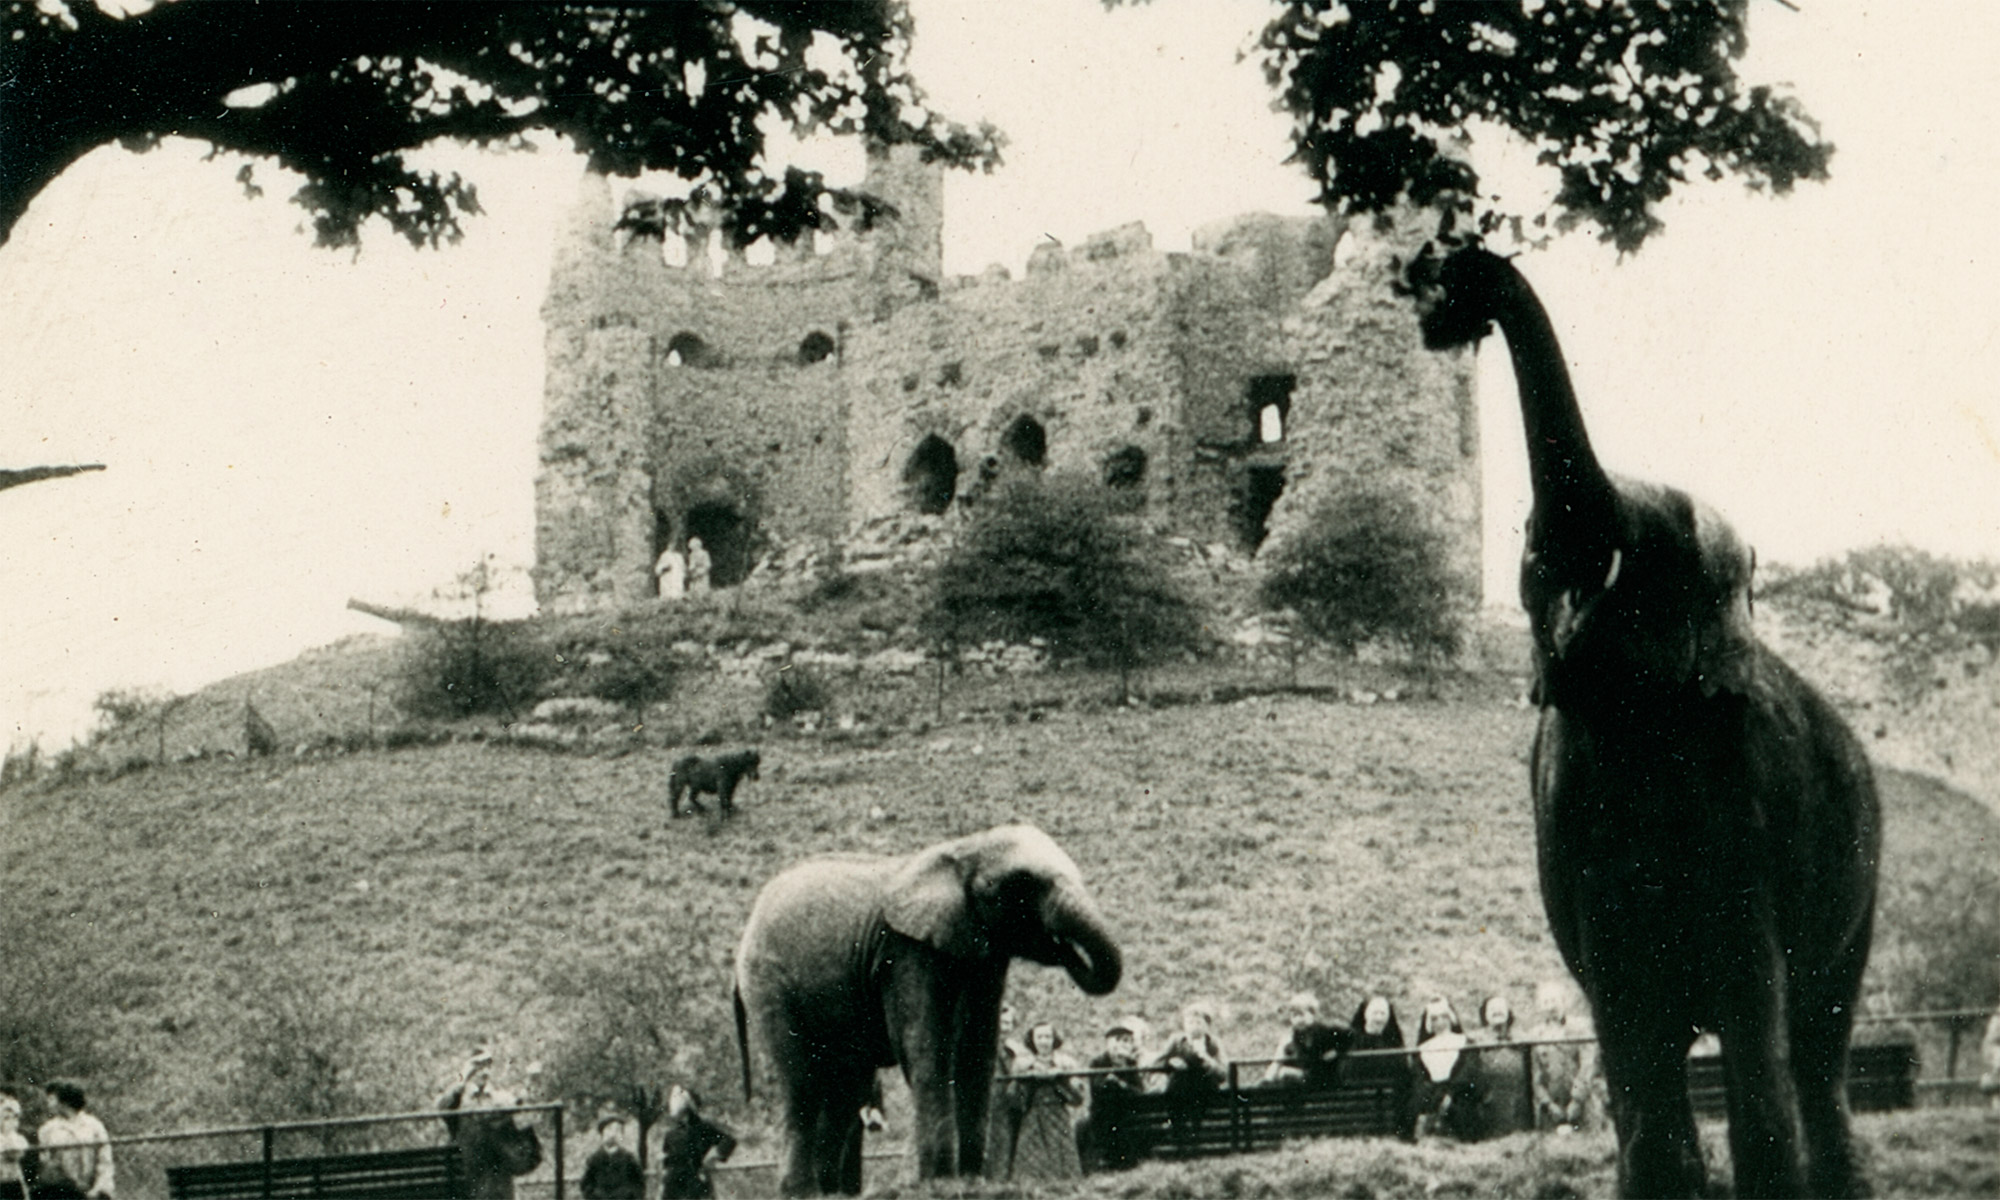 Dudley Zoo: Where animals roam the grounds of a Royalist castle ruined during the First English Civil War